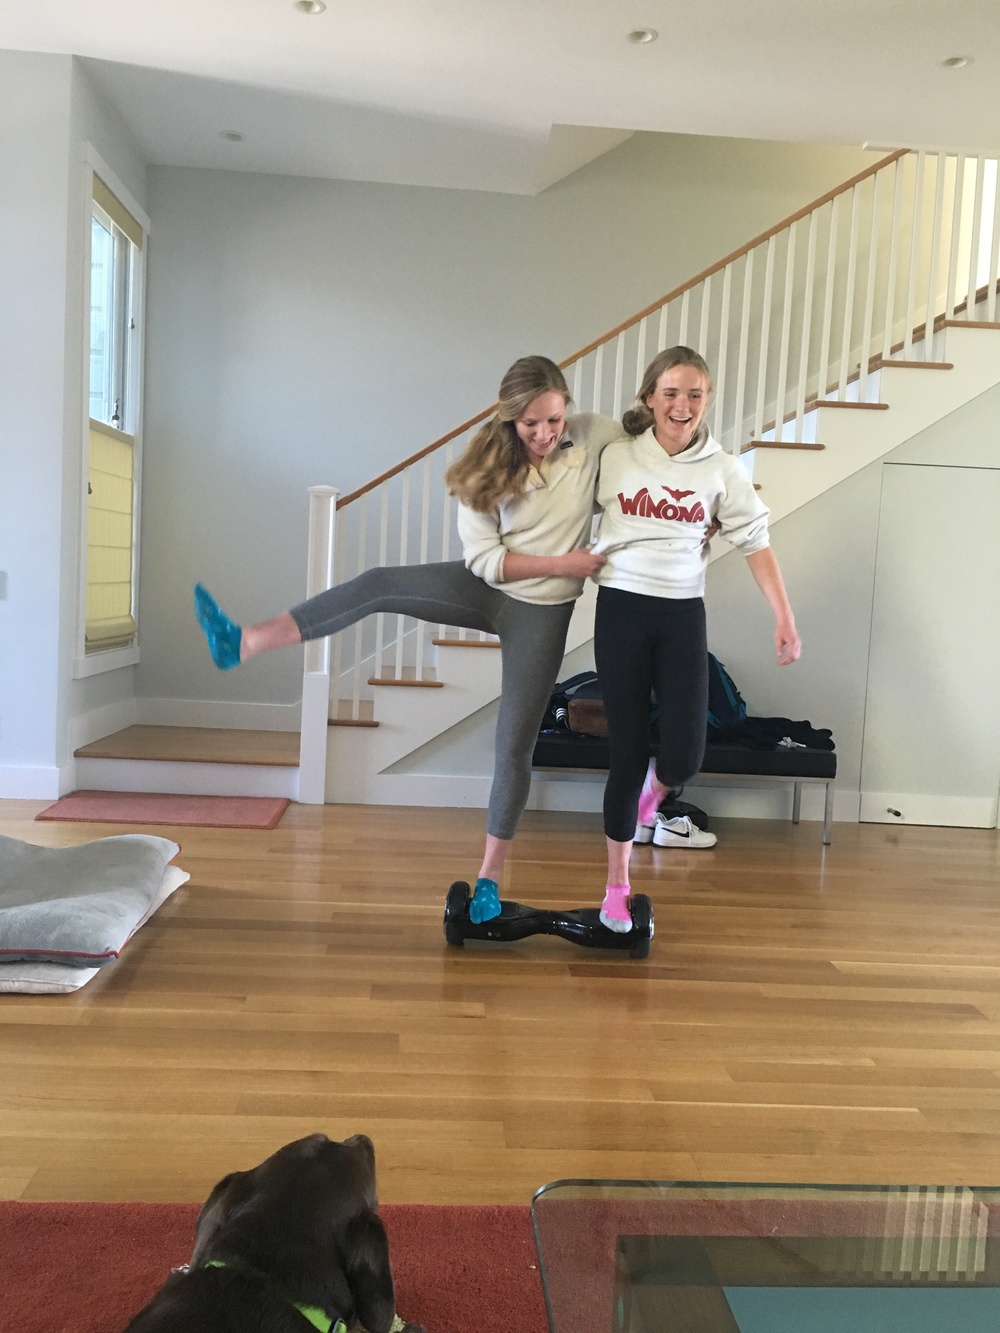 Mia + Cali are acrobats on the hoverboard